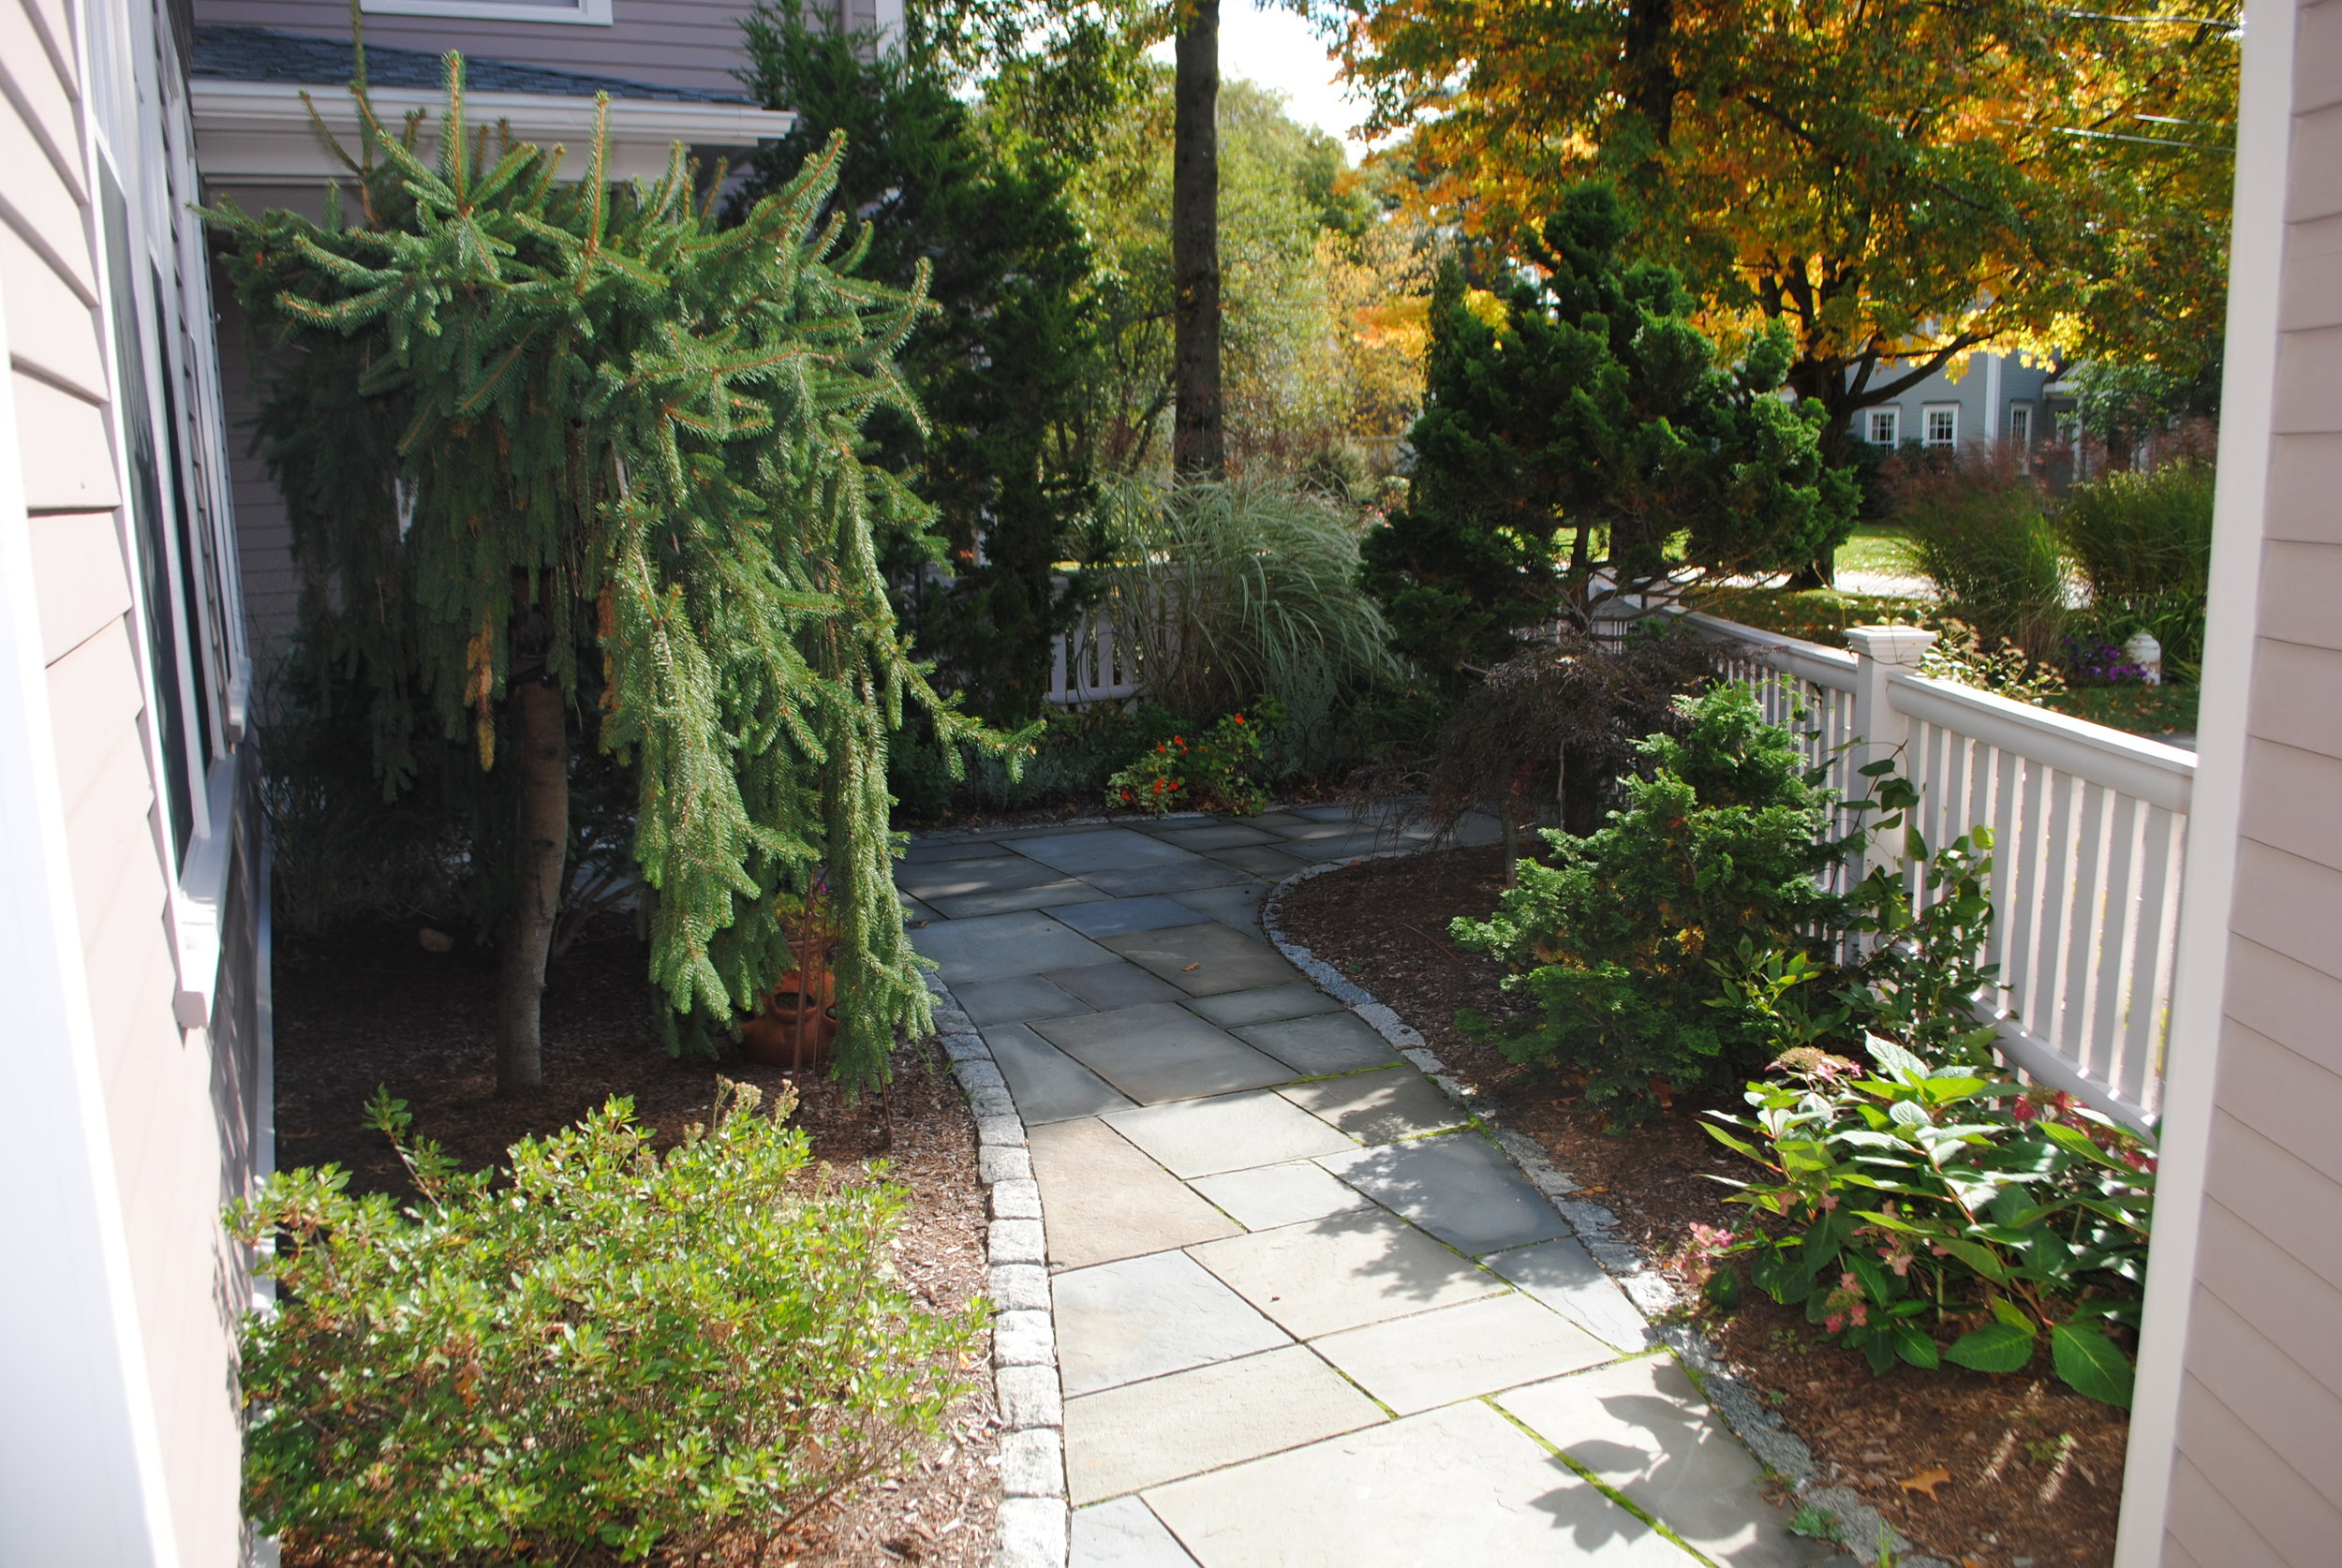 Overgrown shrubs are moved elsewhere and replaced with smaller shrubs that fit the scale of the space. A more formal and easier to maintain path leads to the garage.